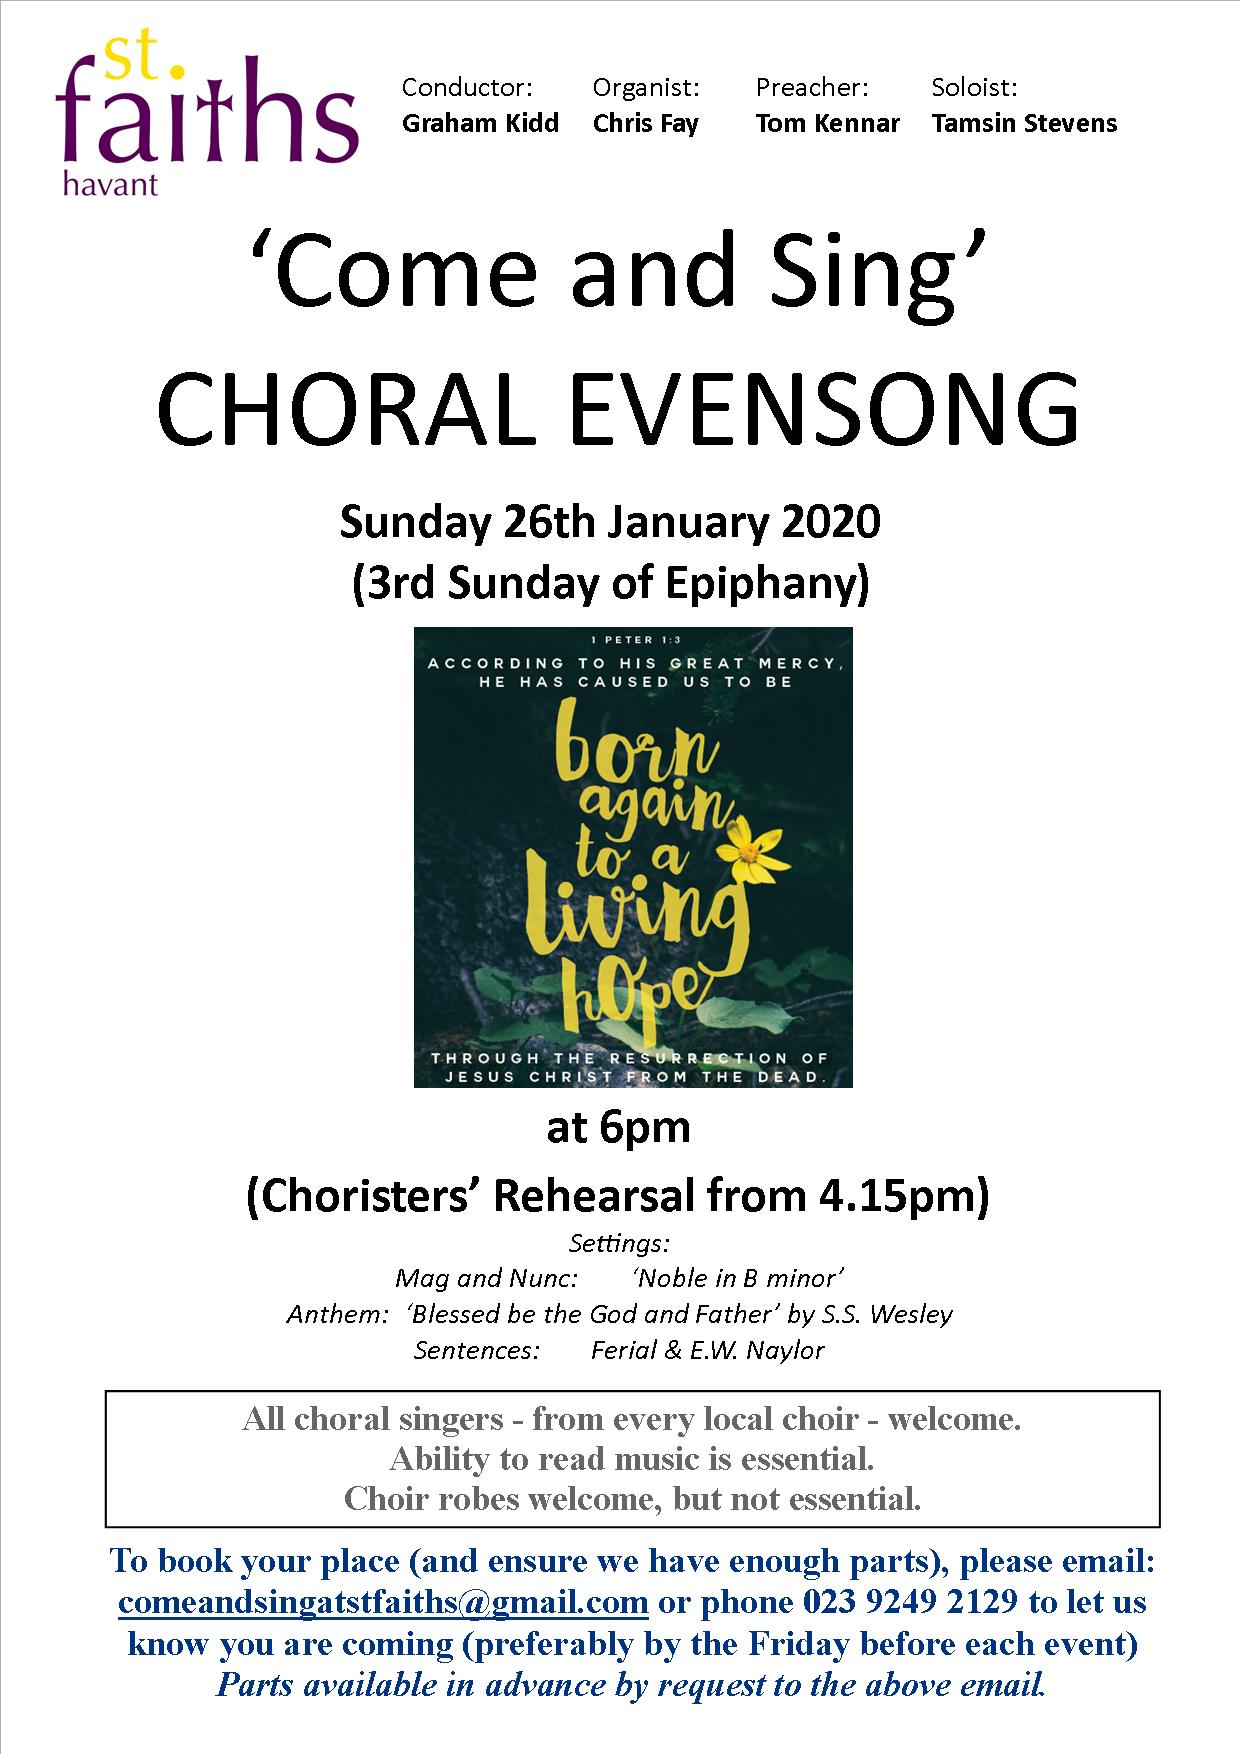 """Come and Sing"" Choral Evensong – January 2020 - St Faith's Church Havant music events"